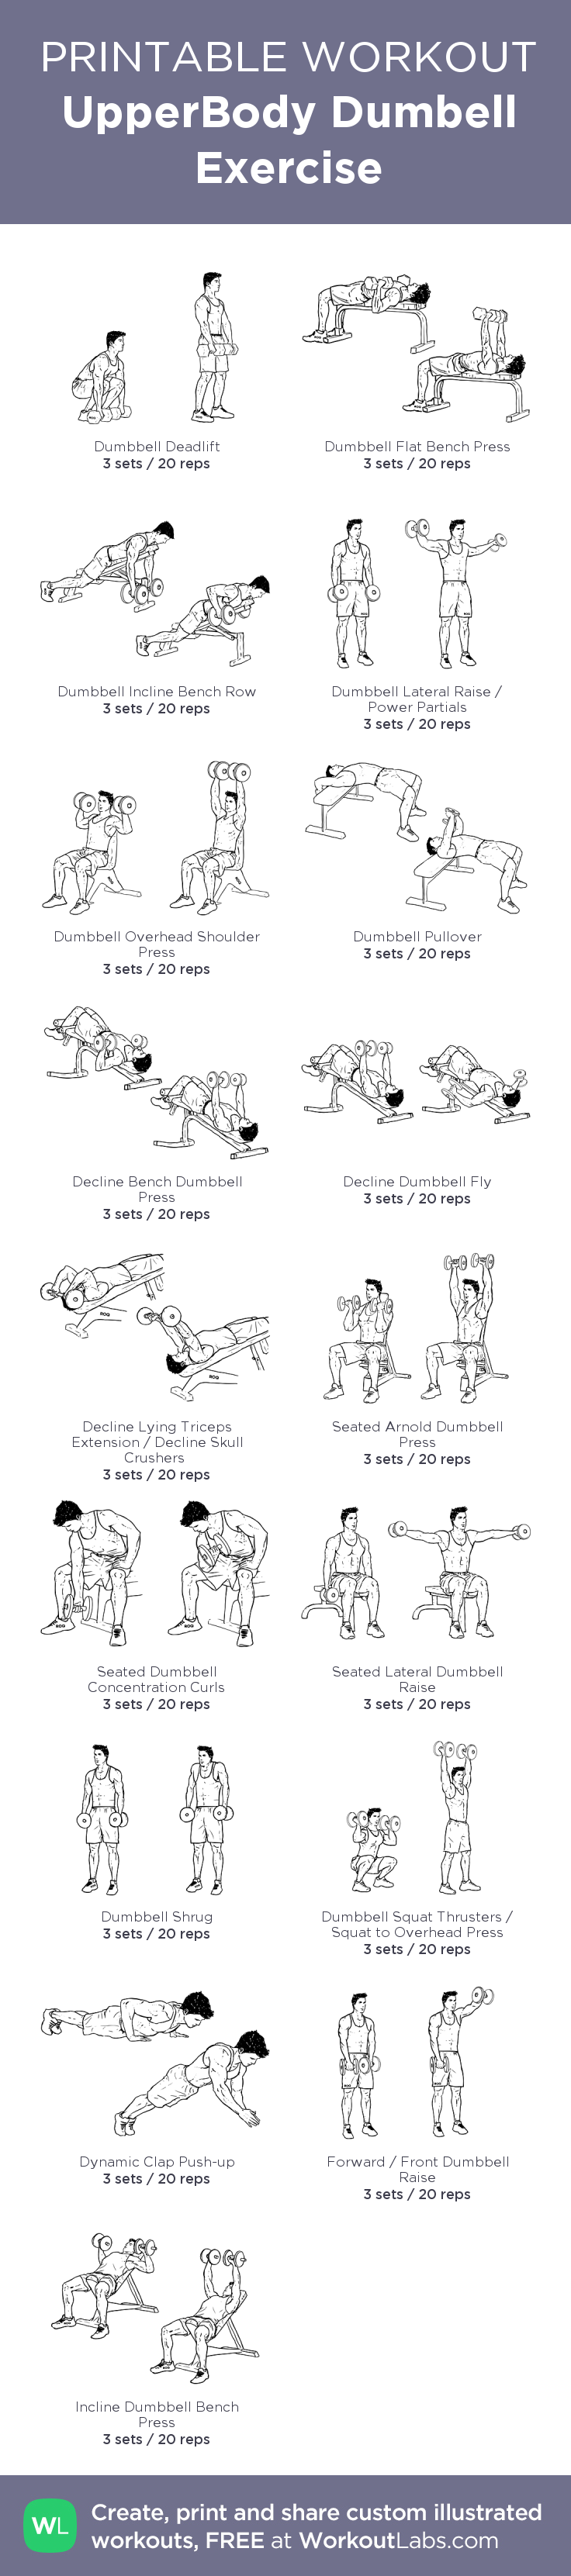 UpperBody Dumbell Exercise WorkoutLabs Fit